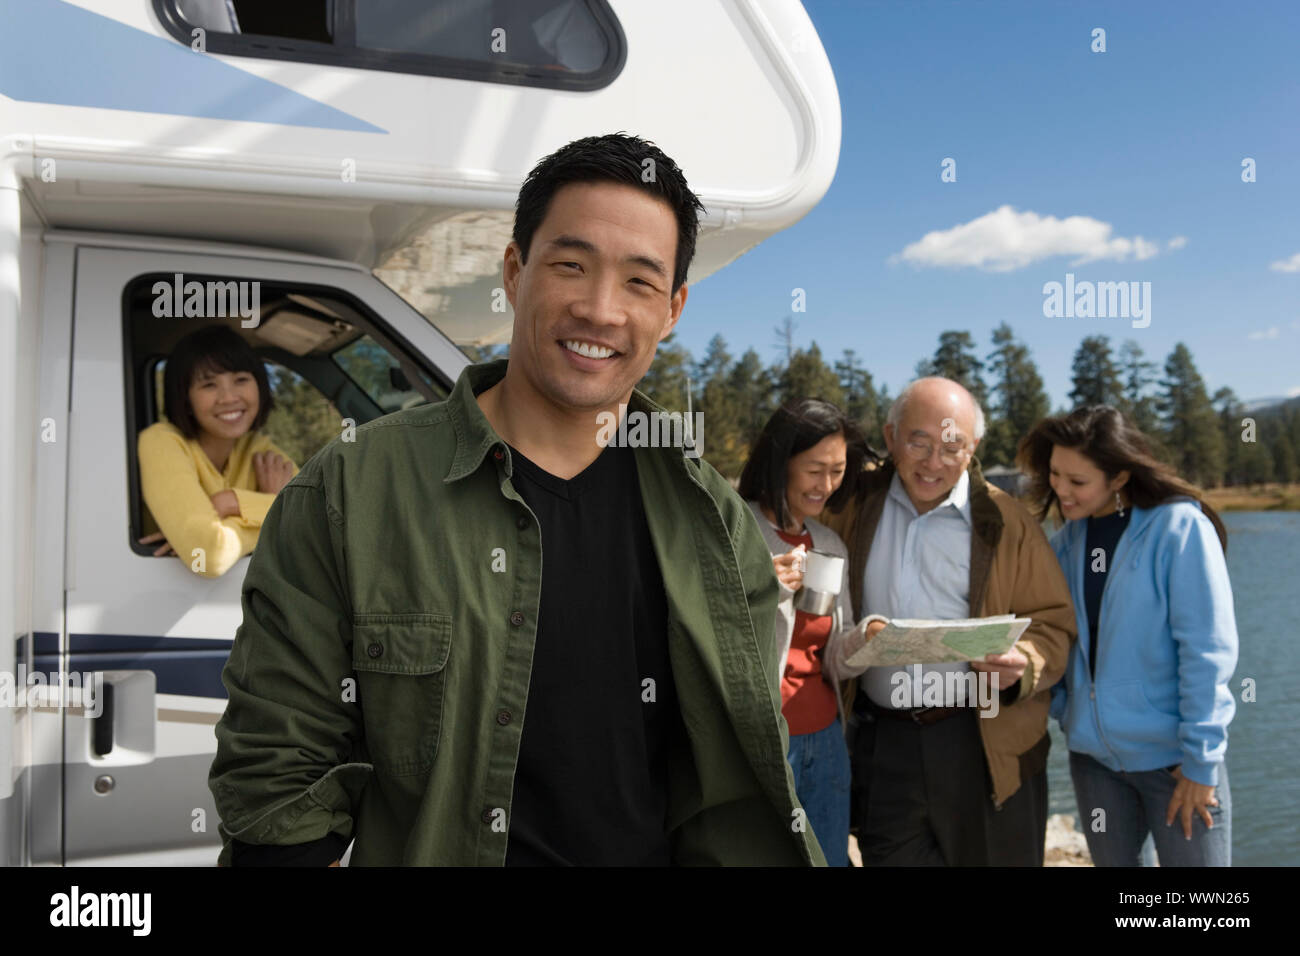 Man and His Family on Vacation Stock Photo